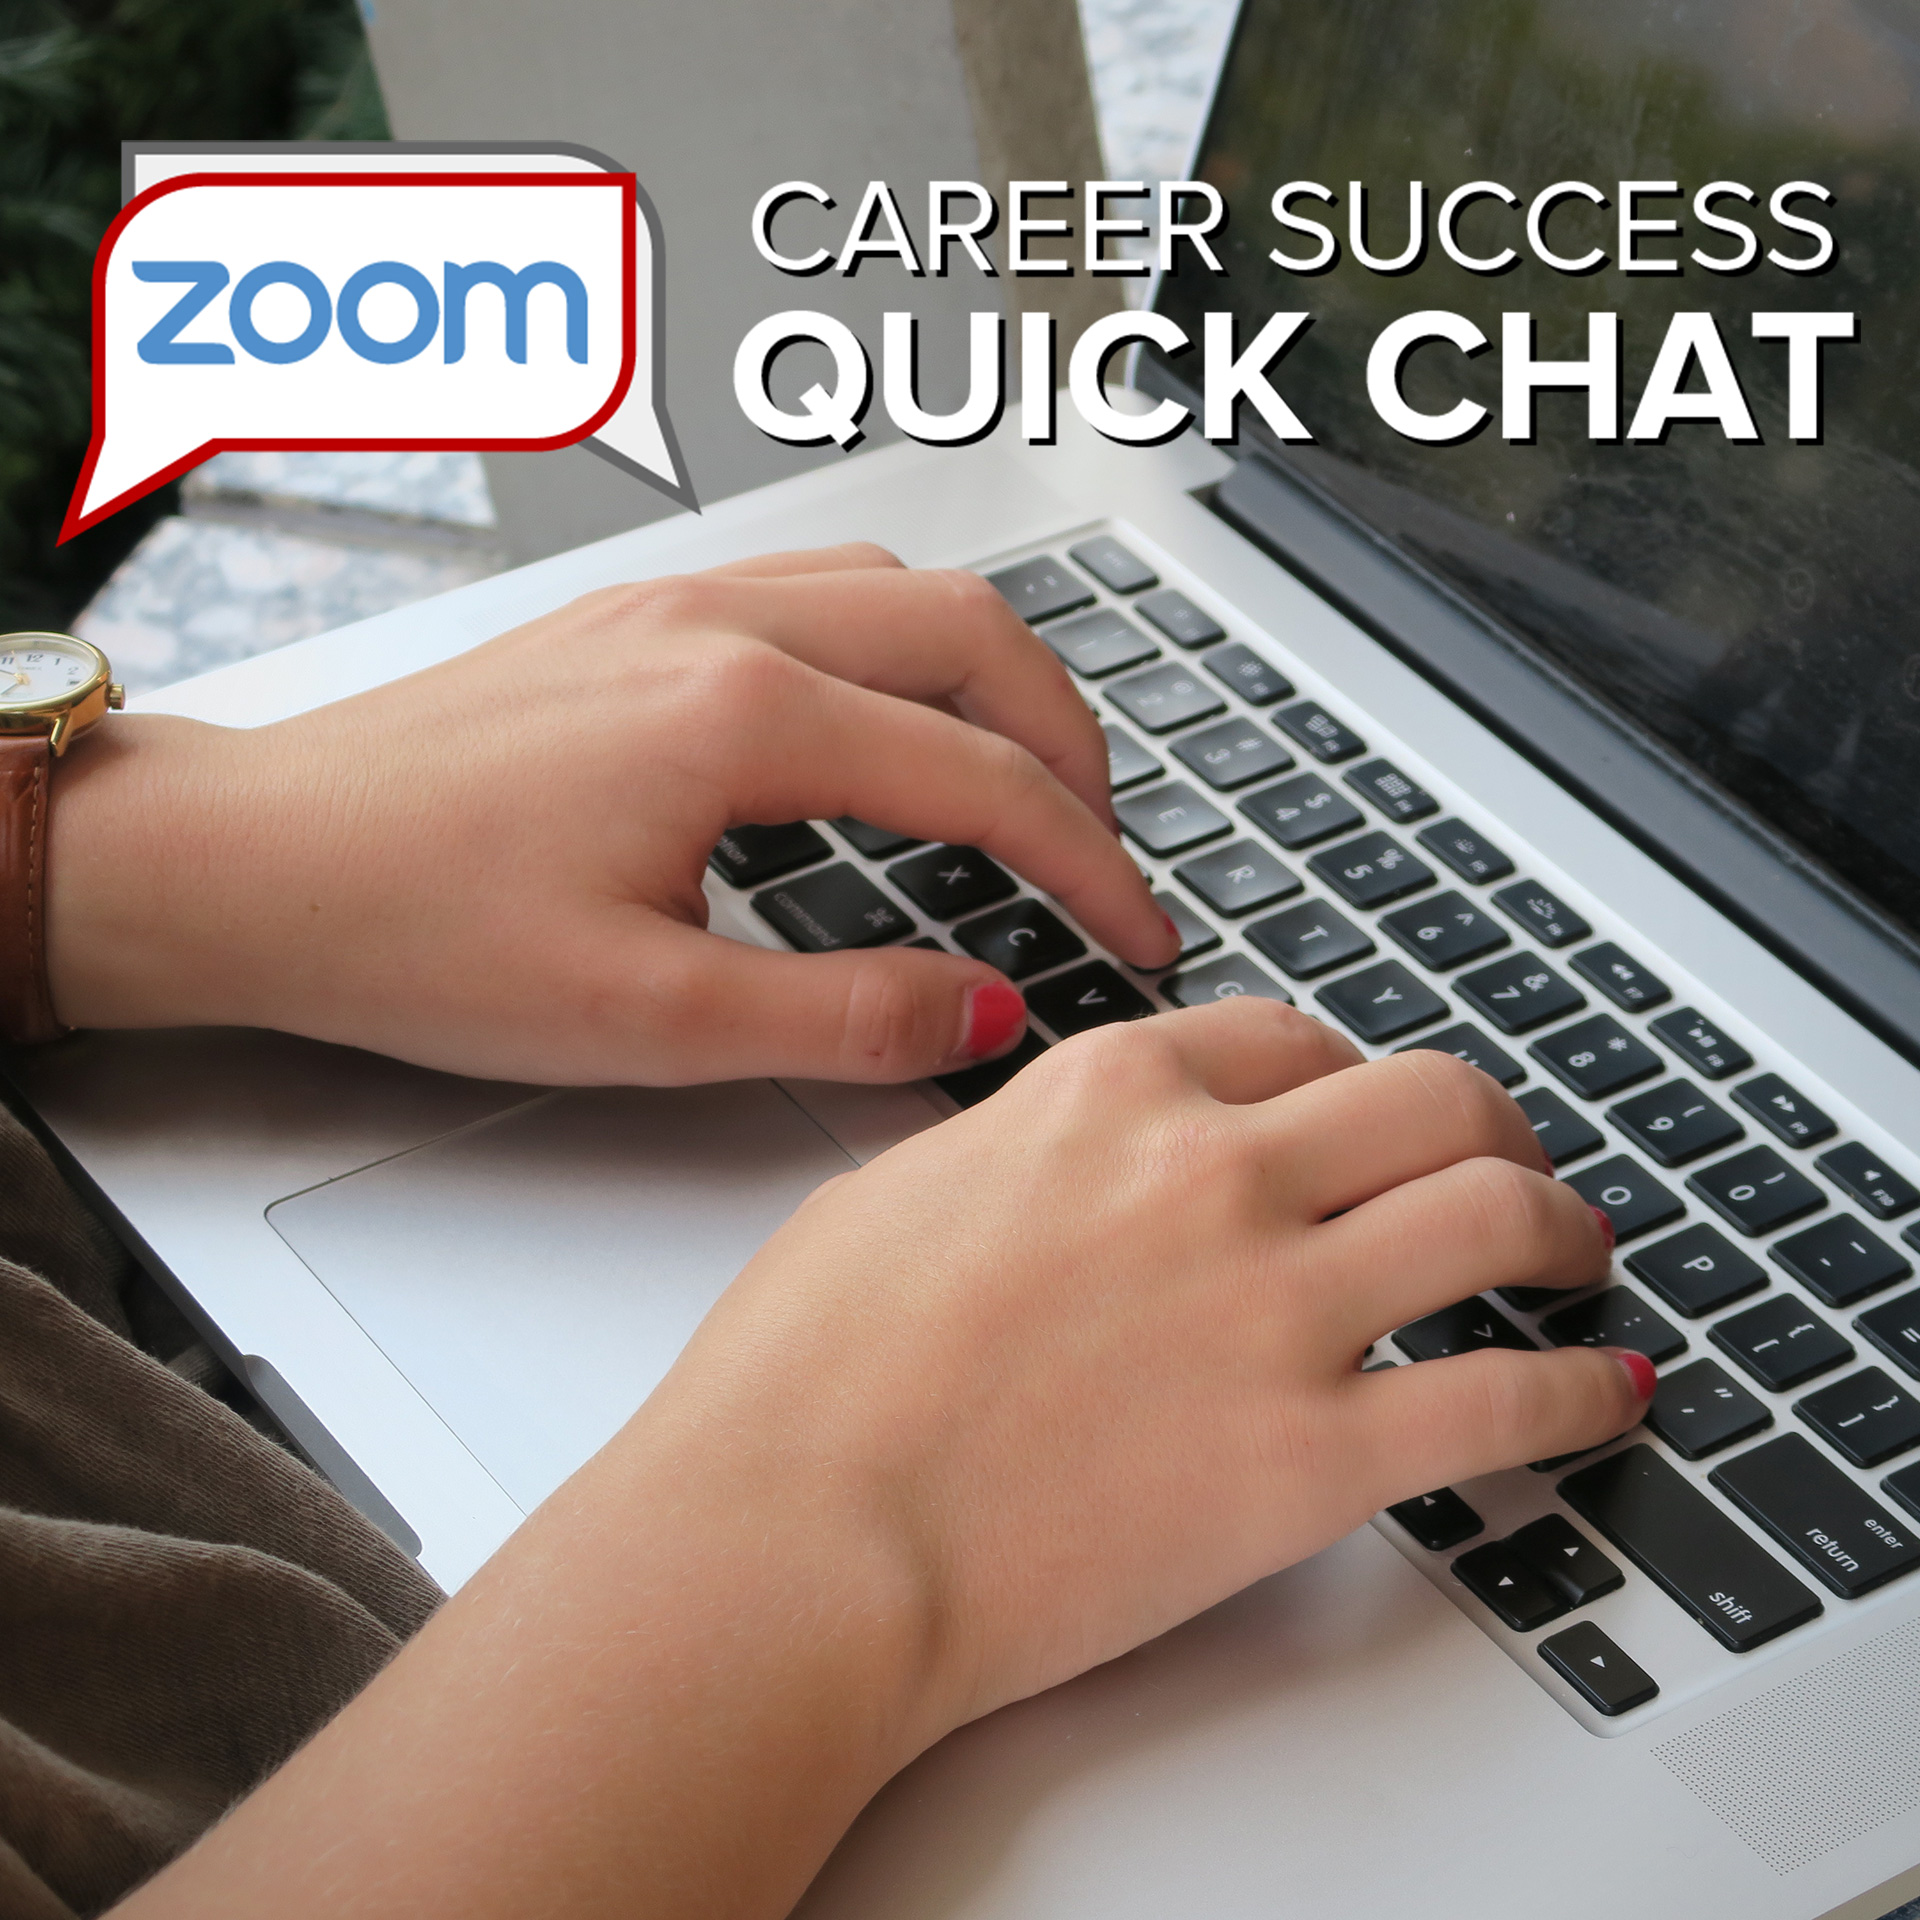 Student using Career Success Quick Chat